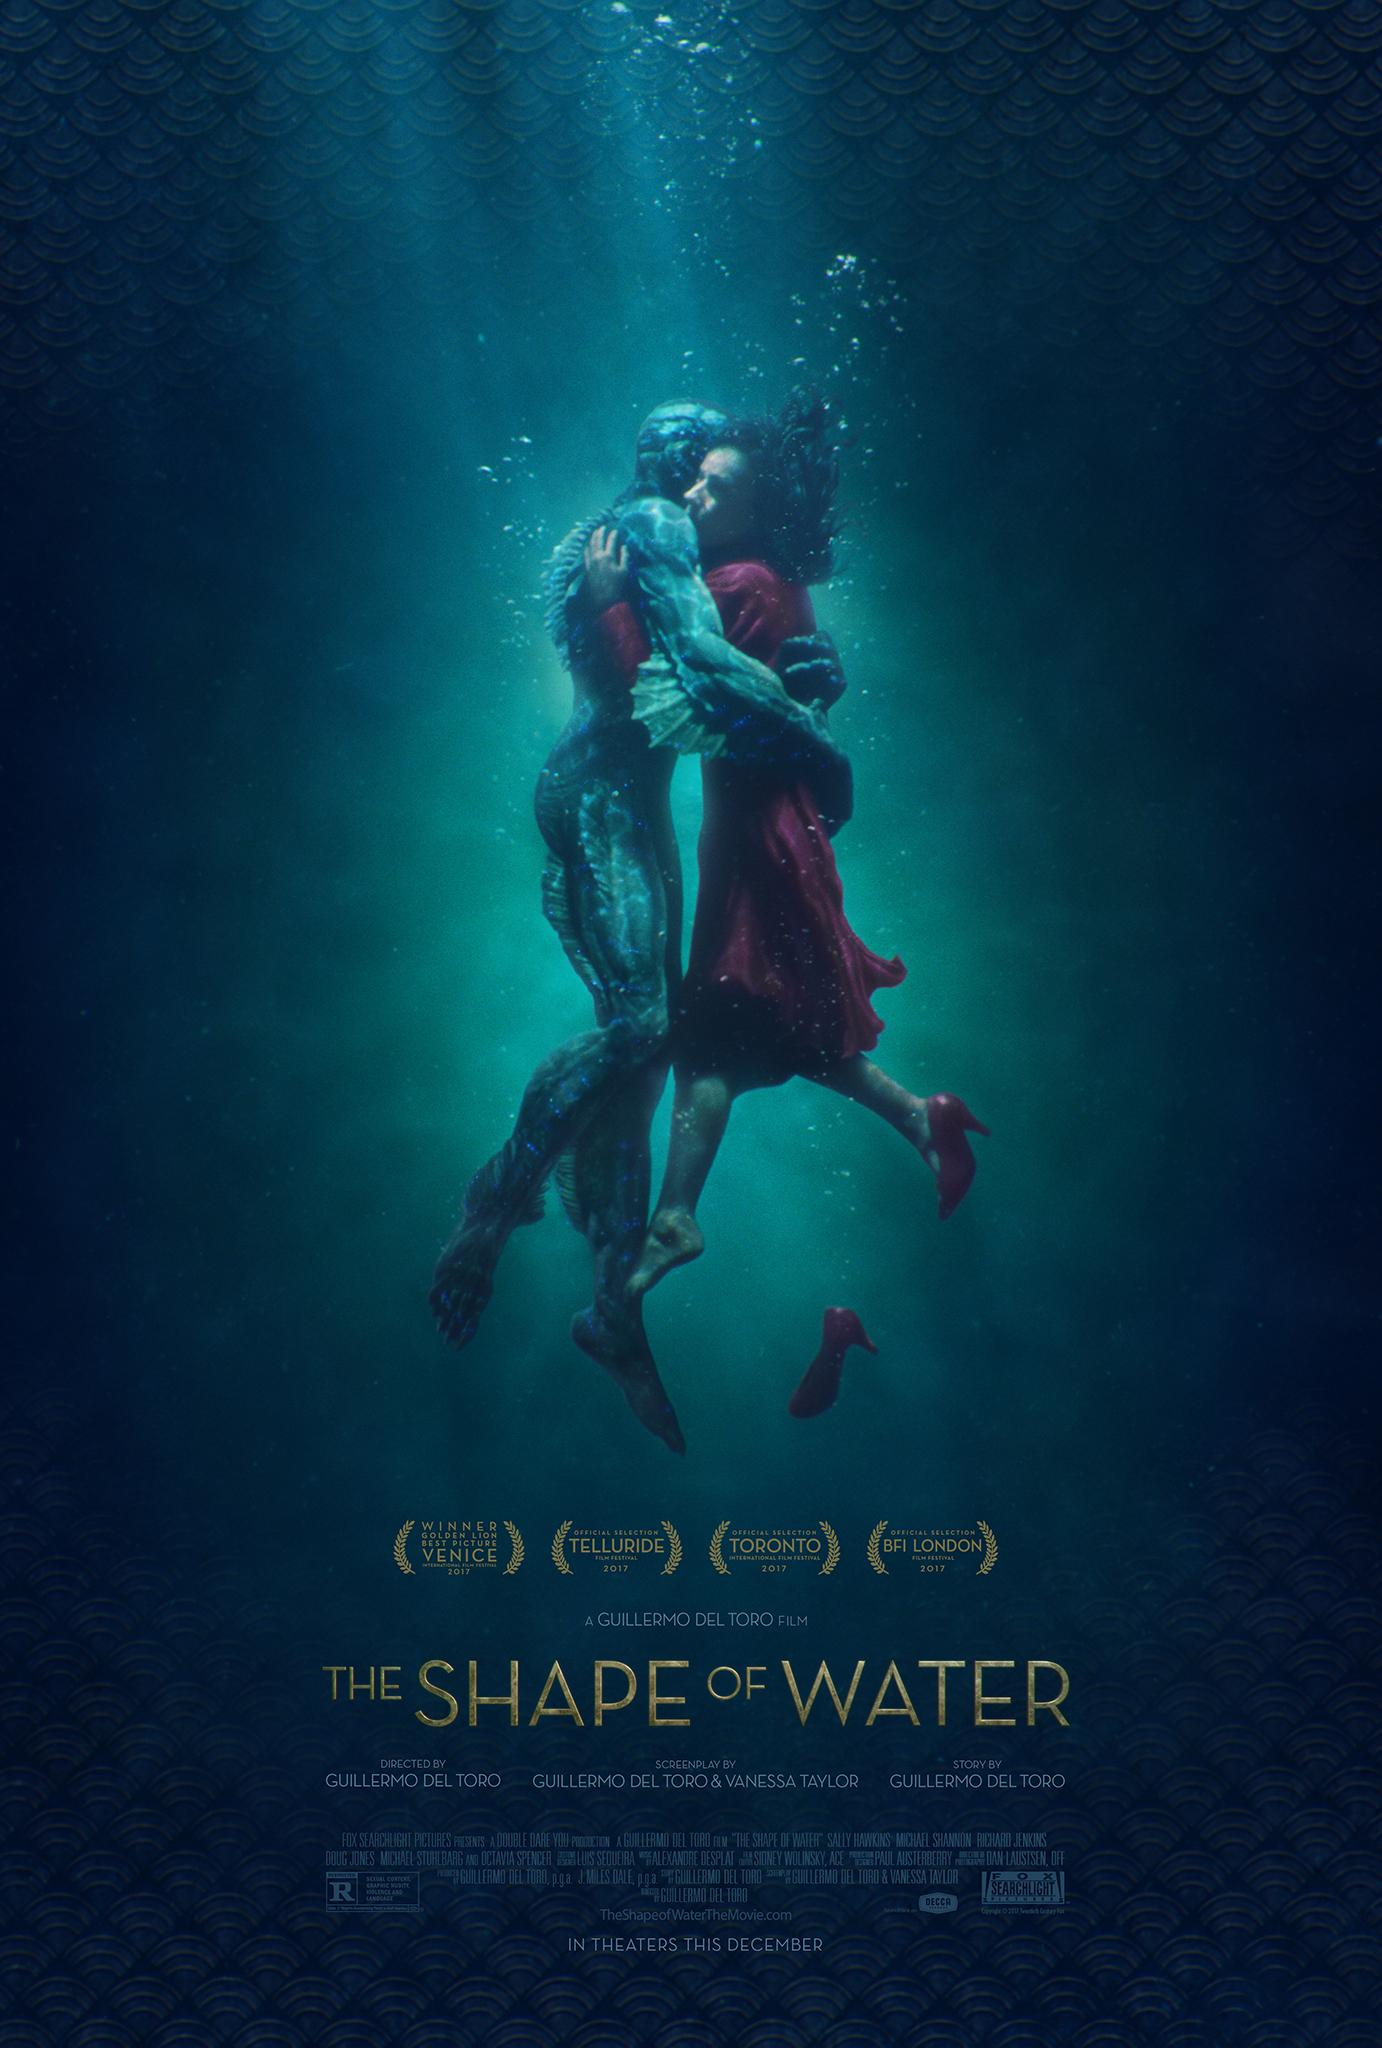 The-shape-of-water-poster-4